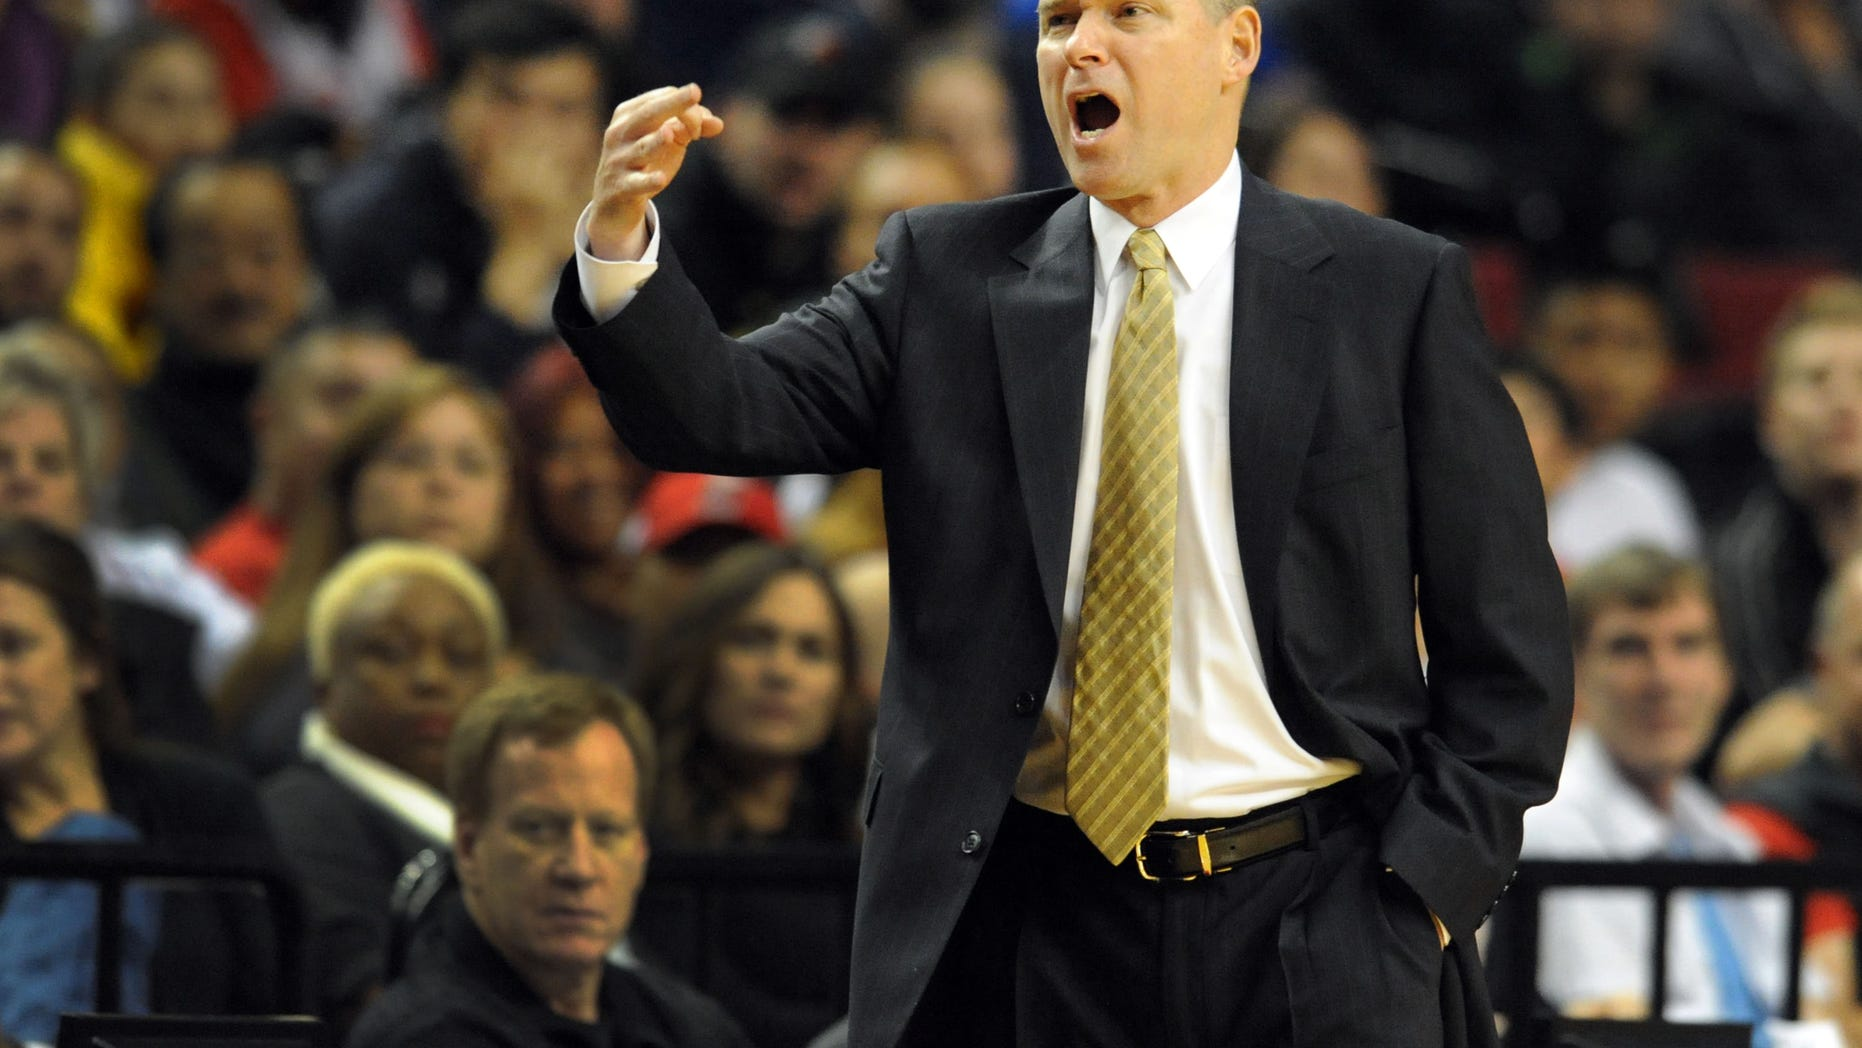 Sacramento Kings head coach Michael Malone yells out to the officials during the first half of an NBA basketball game against the Portland Trail Blazers onSunday, Oct. 20, 2013, in Milwaukee. (AP Photo/Steve Dykes)